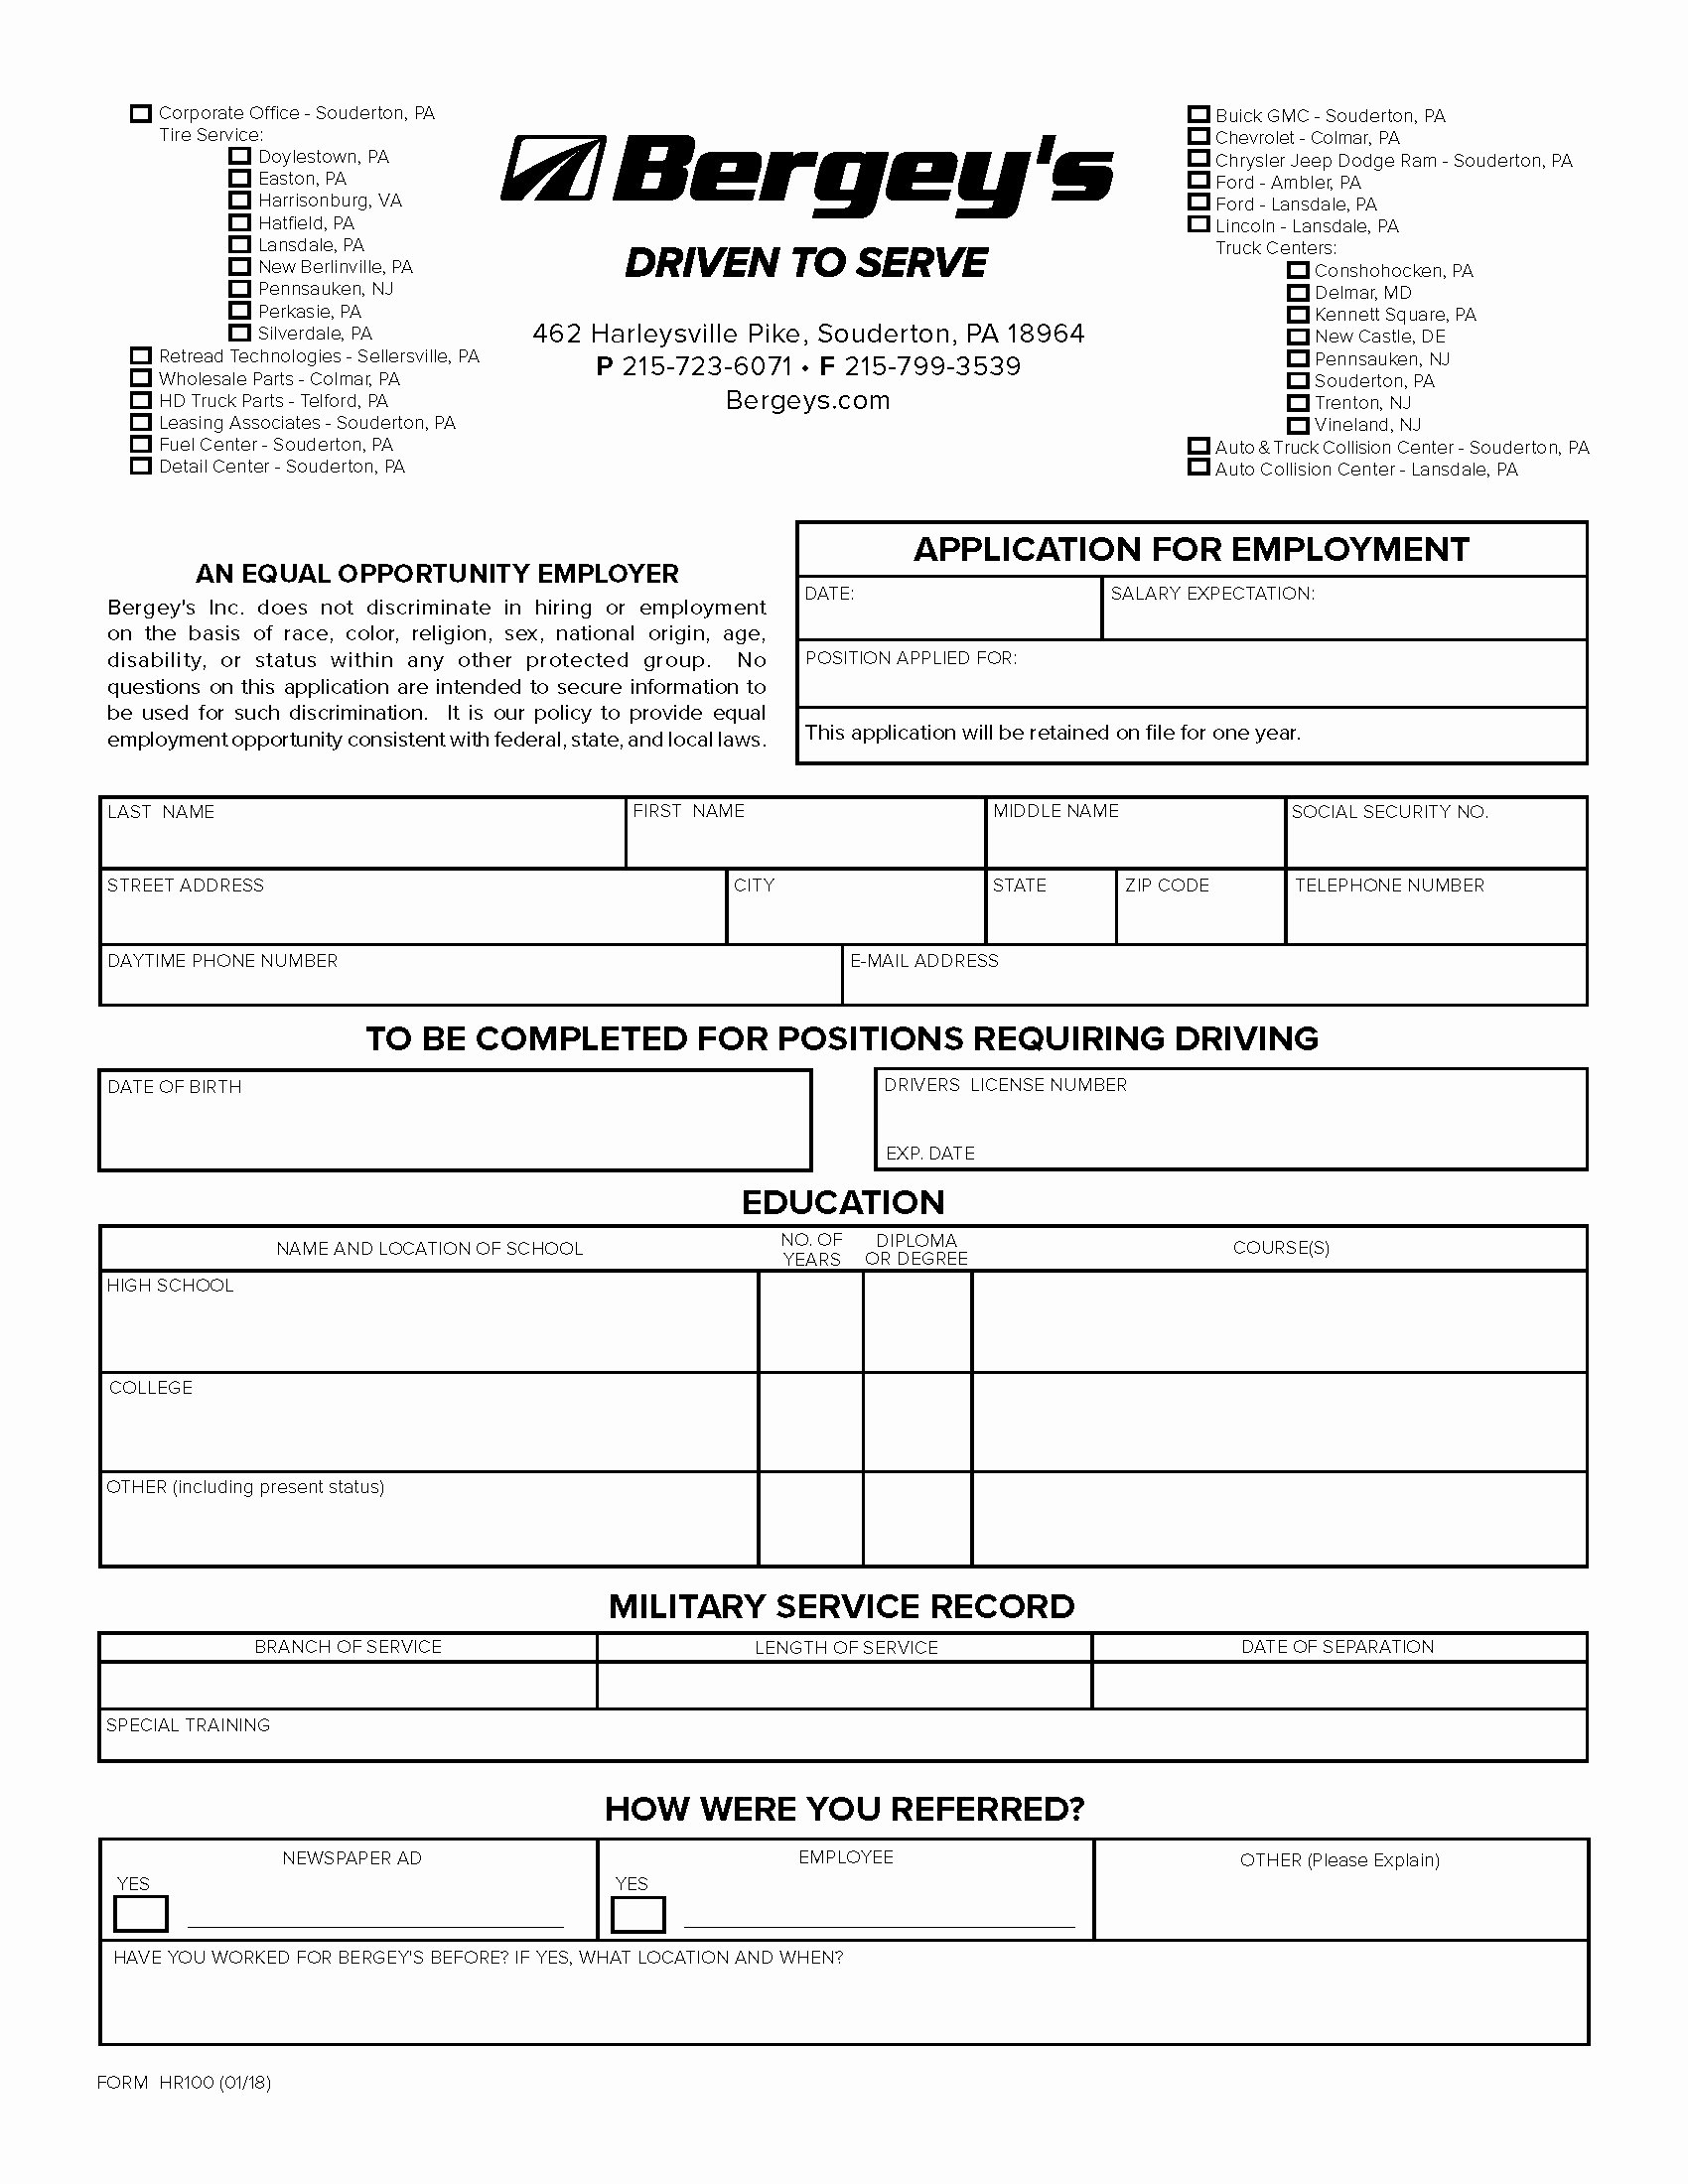 Automobile Credit Application form Elegant Print Application